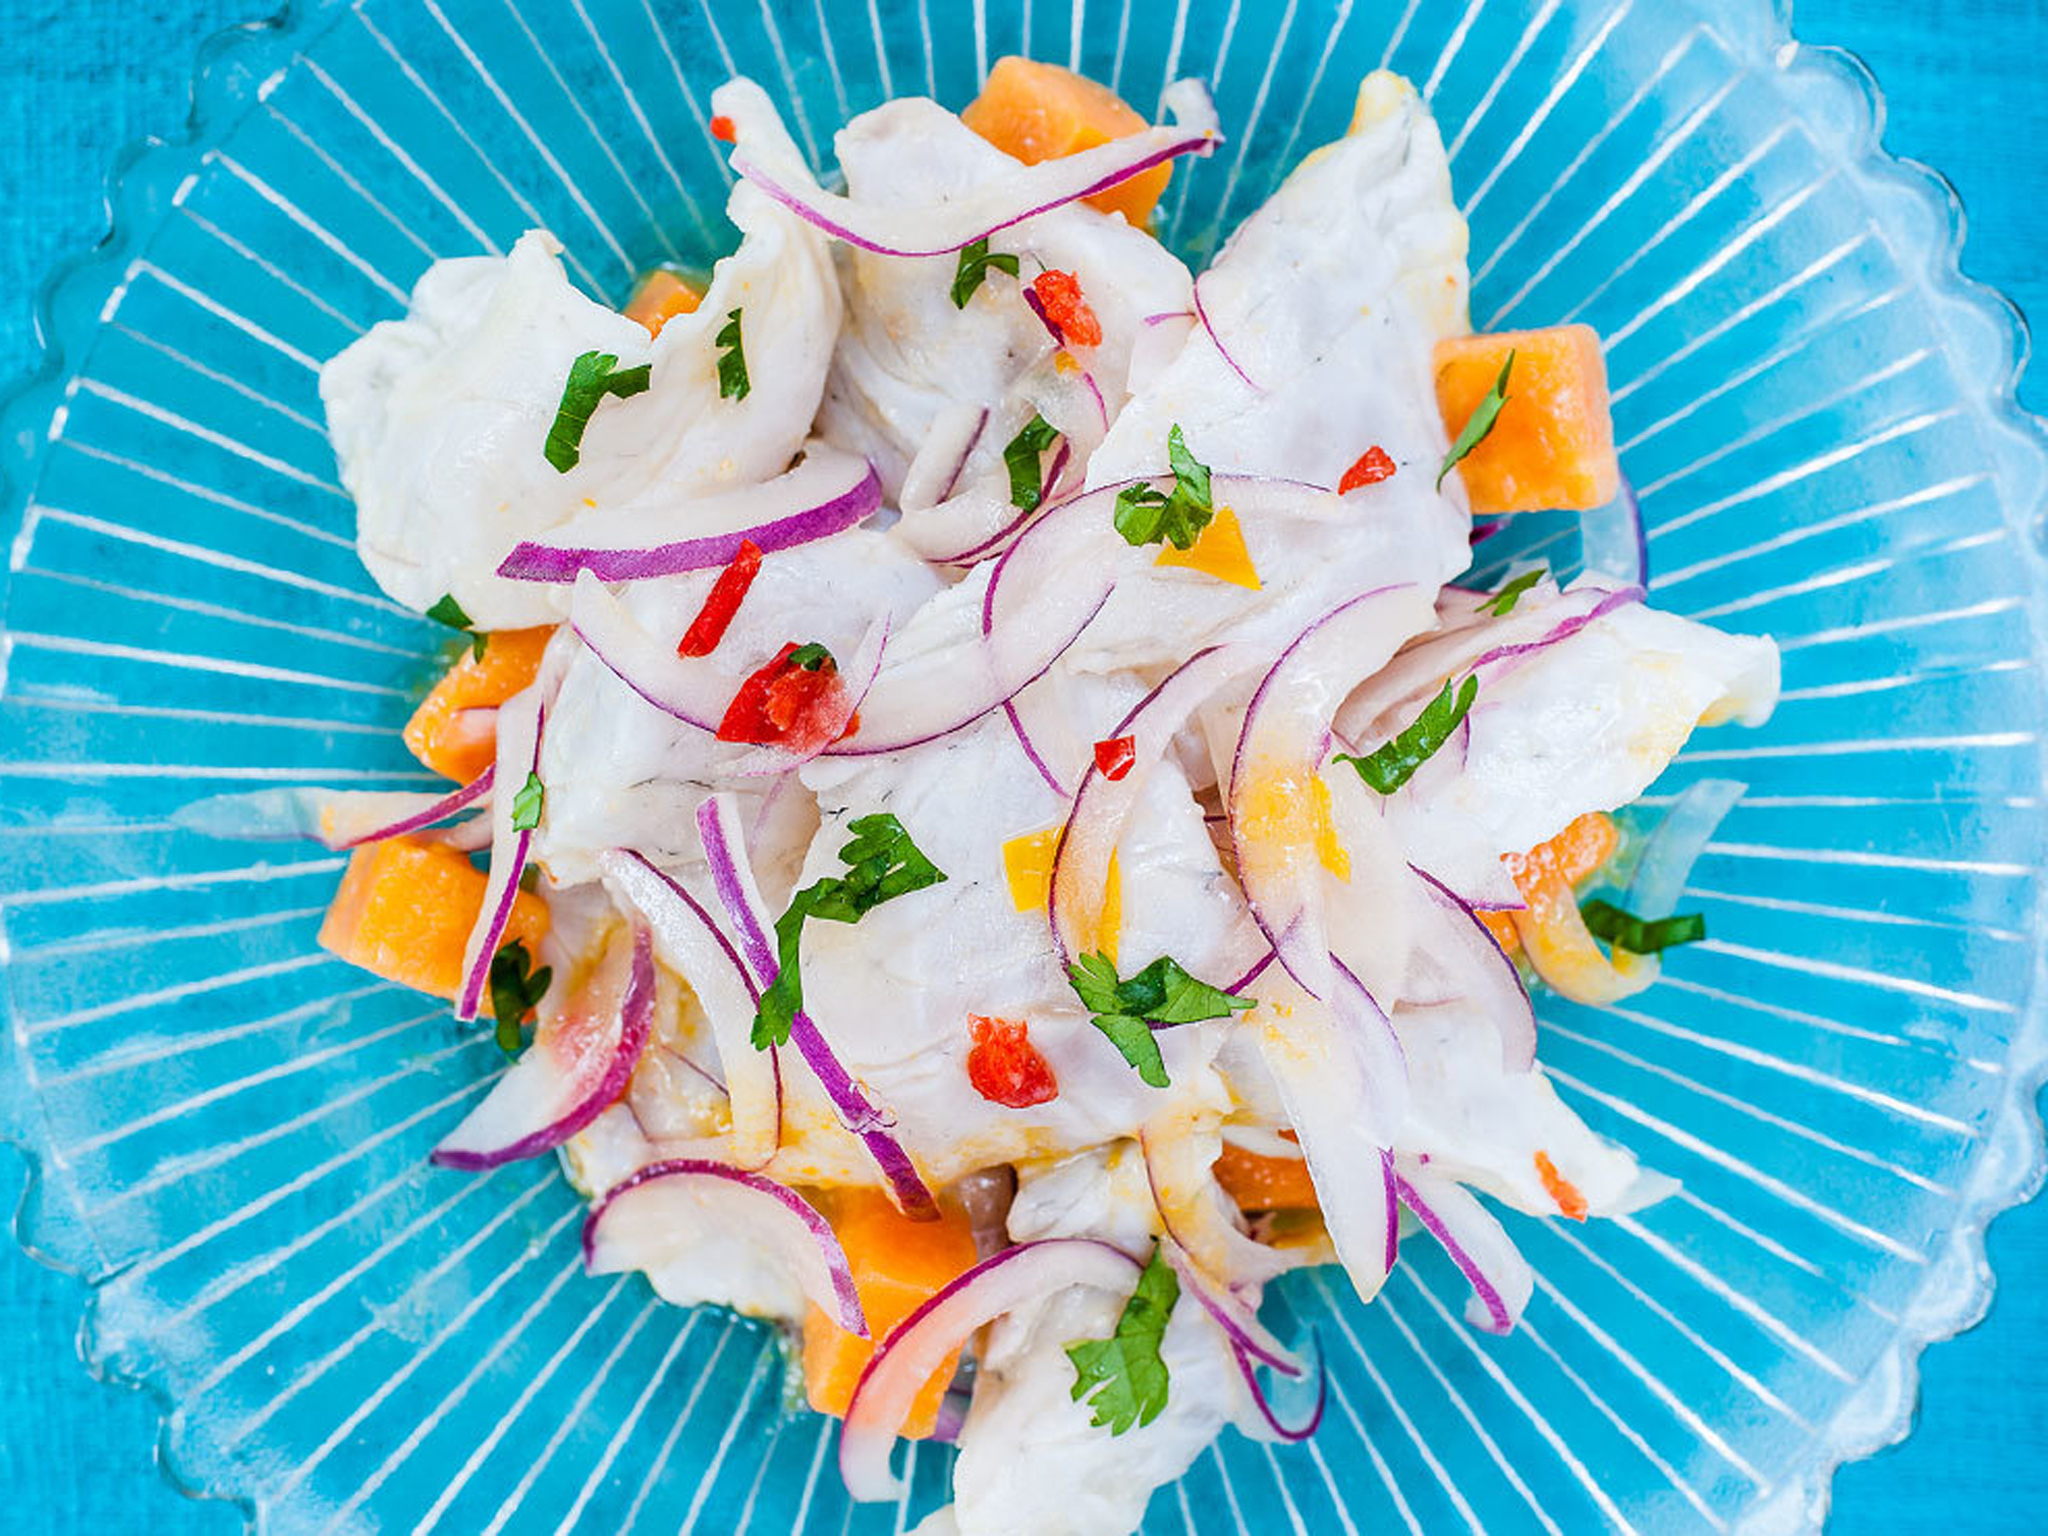 100 best dishes in london, ceviche, don ceviche